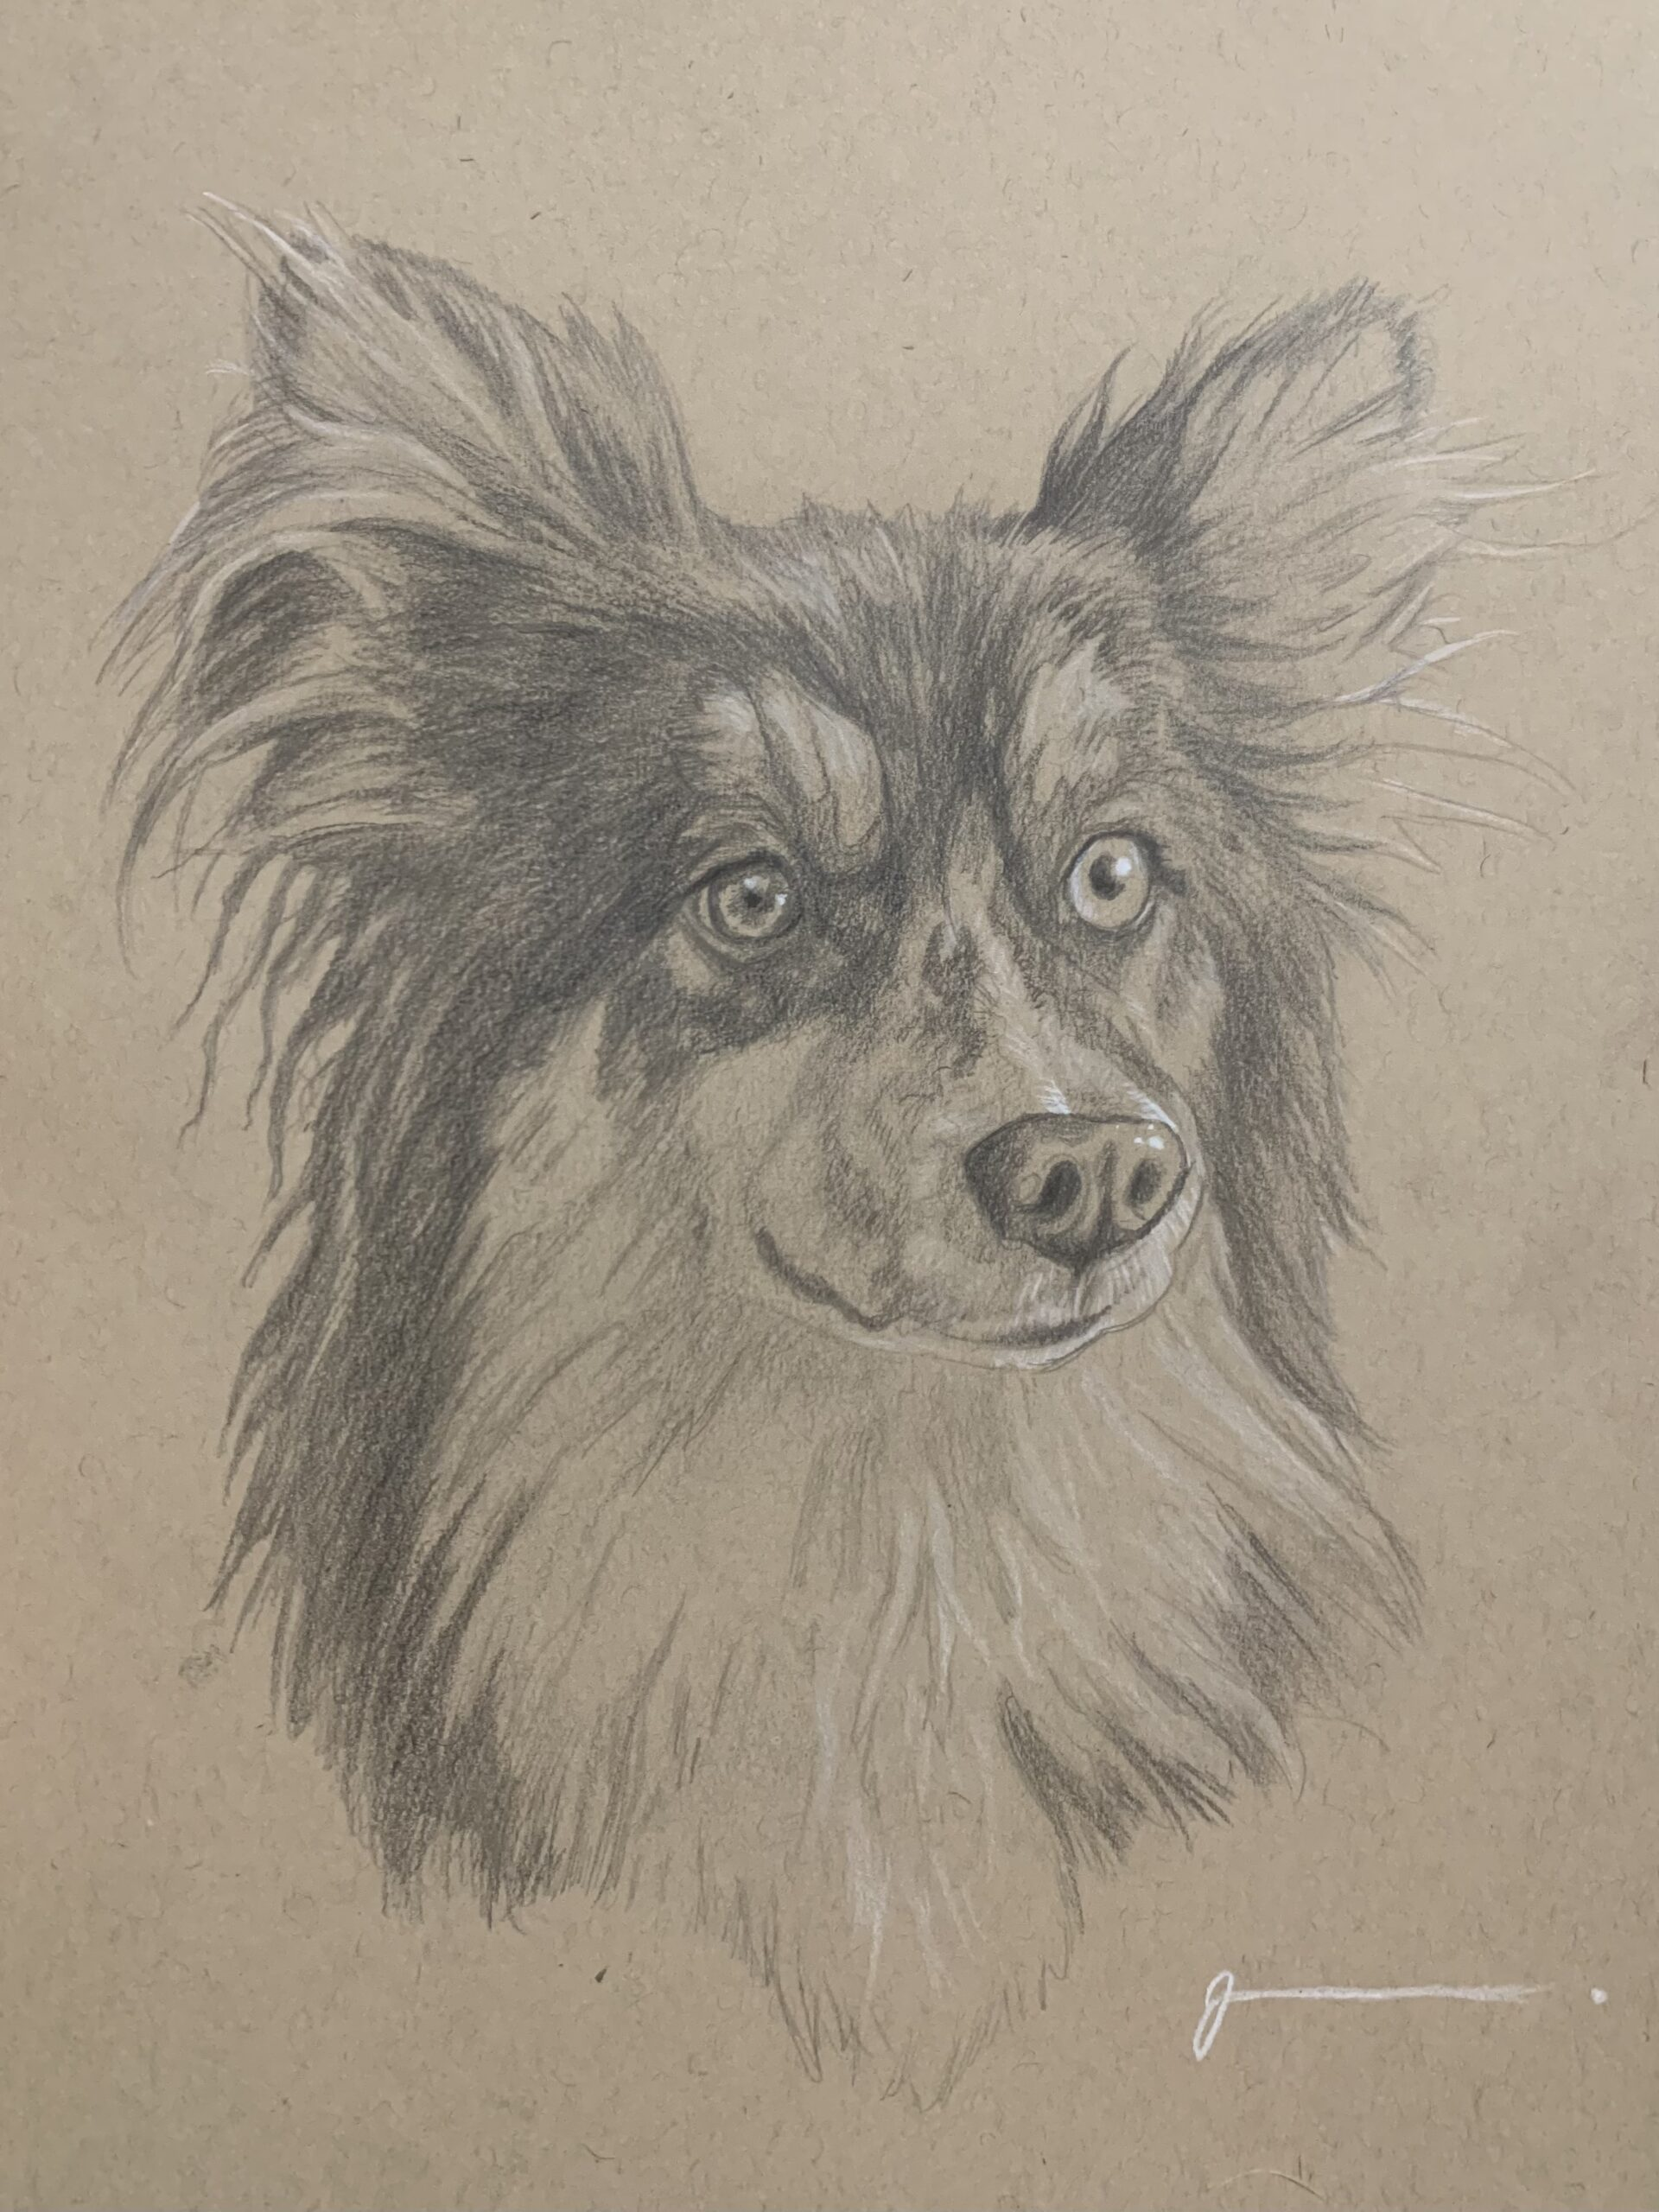 Pet Portrait by Josh